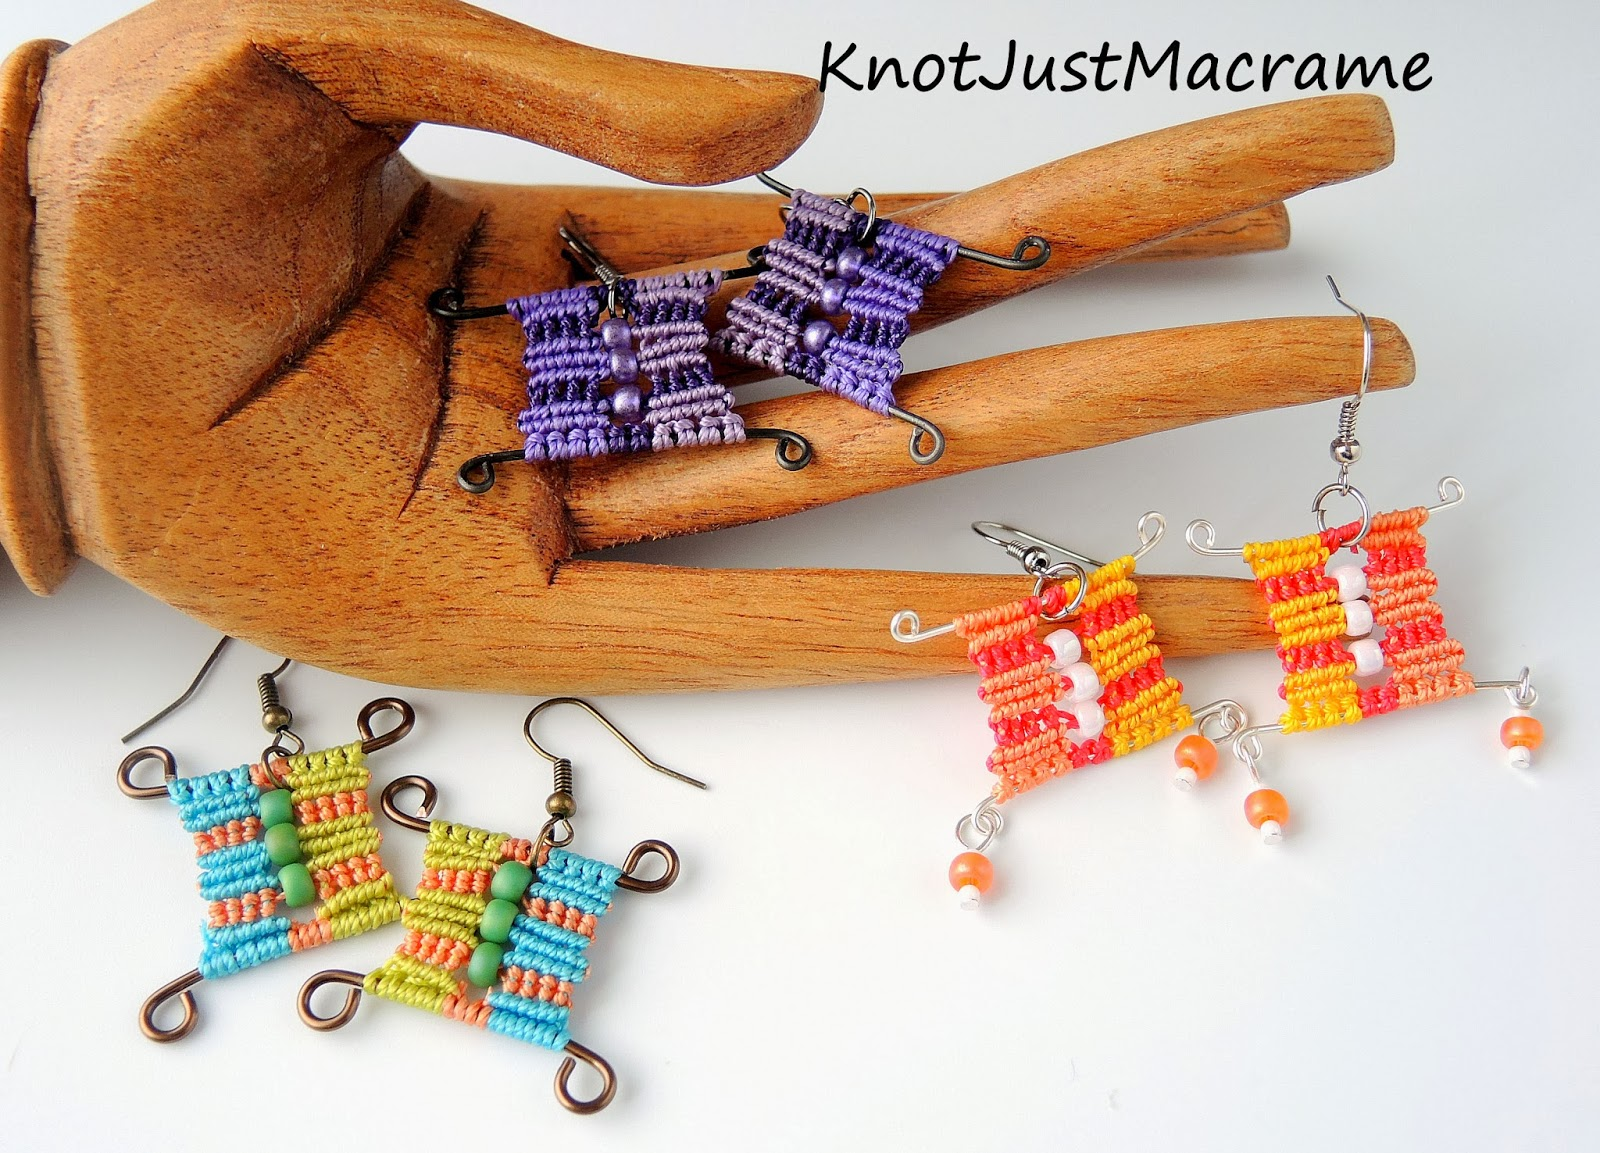 Cubist micro macrame earrings - new class from Sherri Stokey